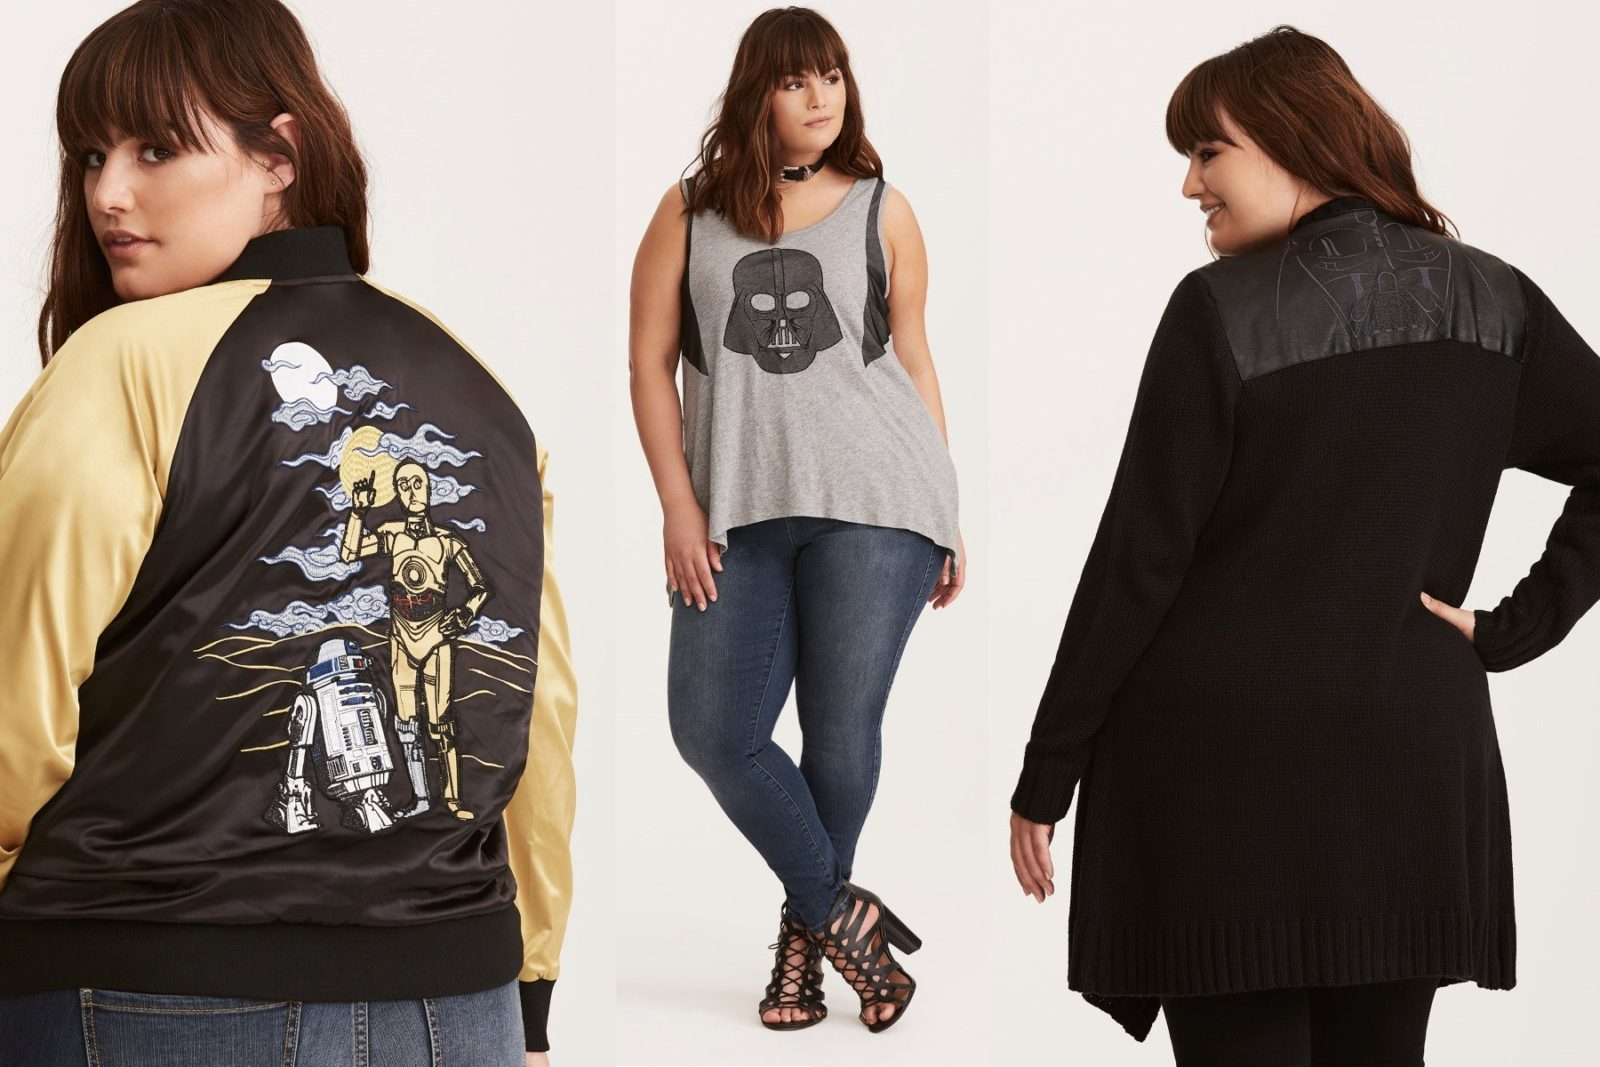 New Her Universe Fashion at Torrid